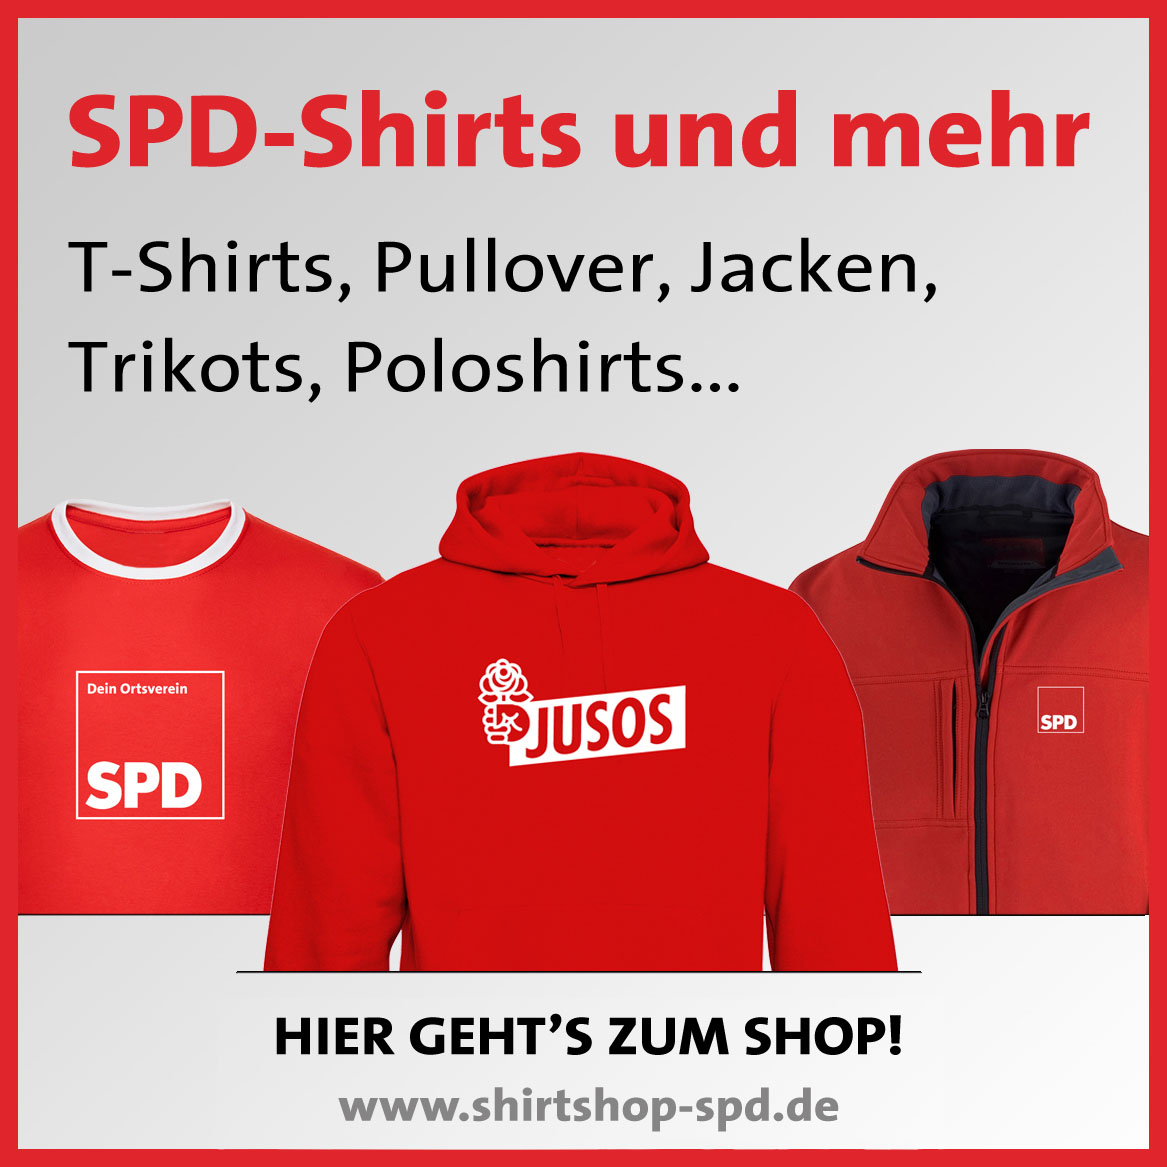 SPD-Shirts, Hoodies, Jacken; Poloshirts im SPD-Shirtshop